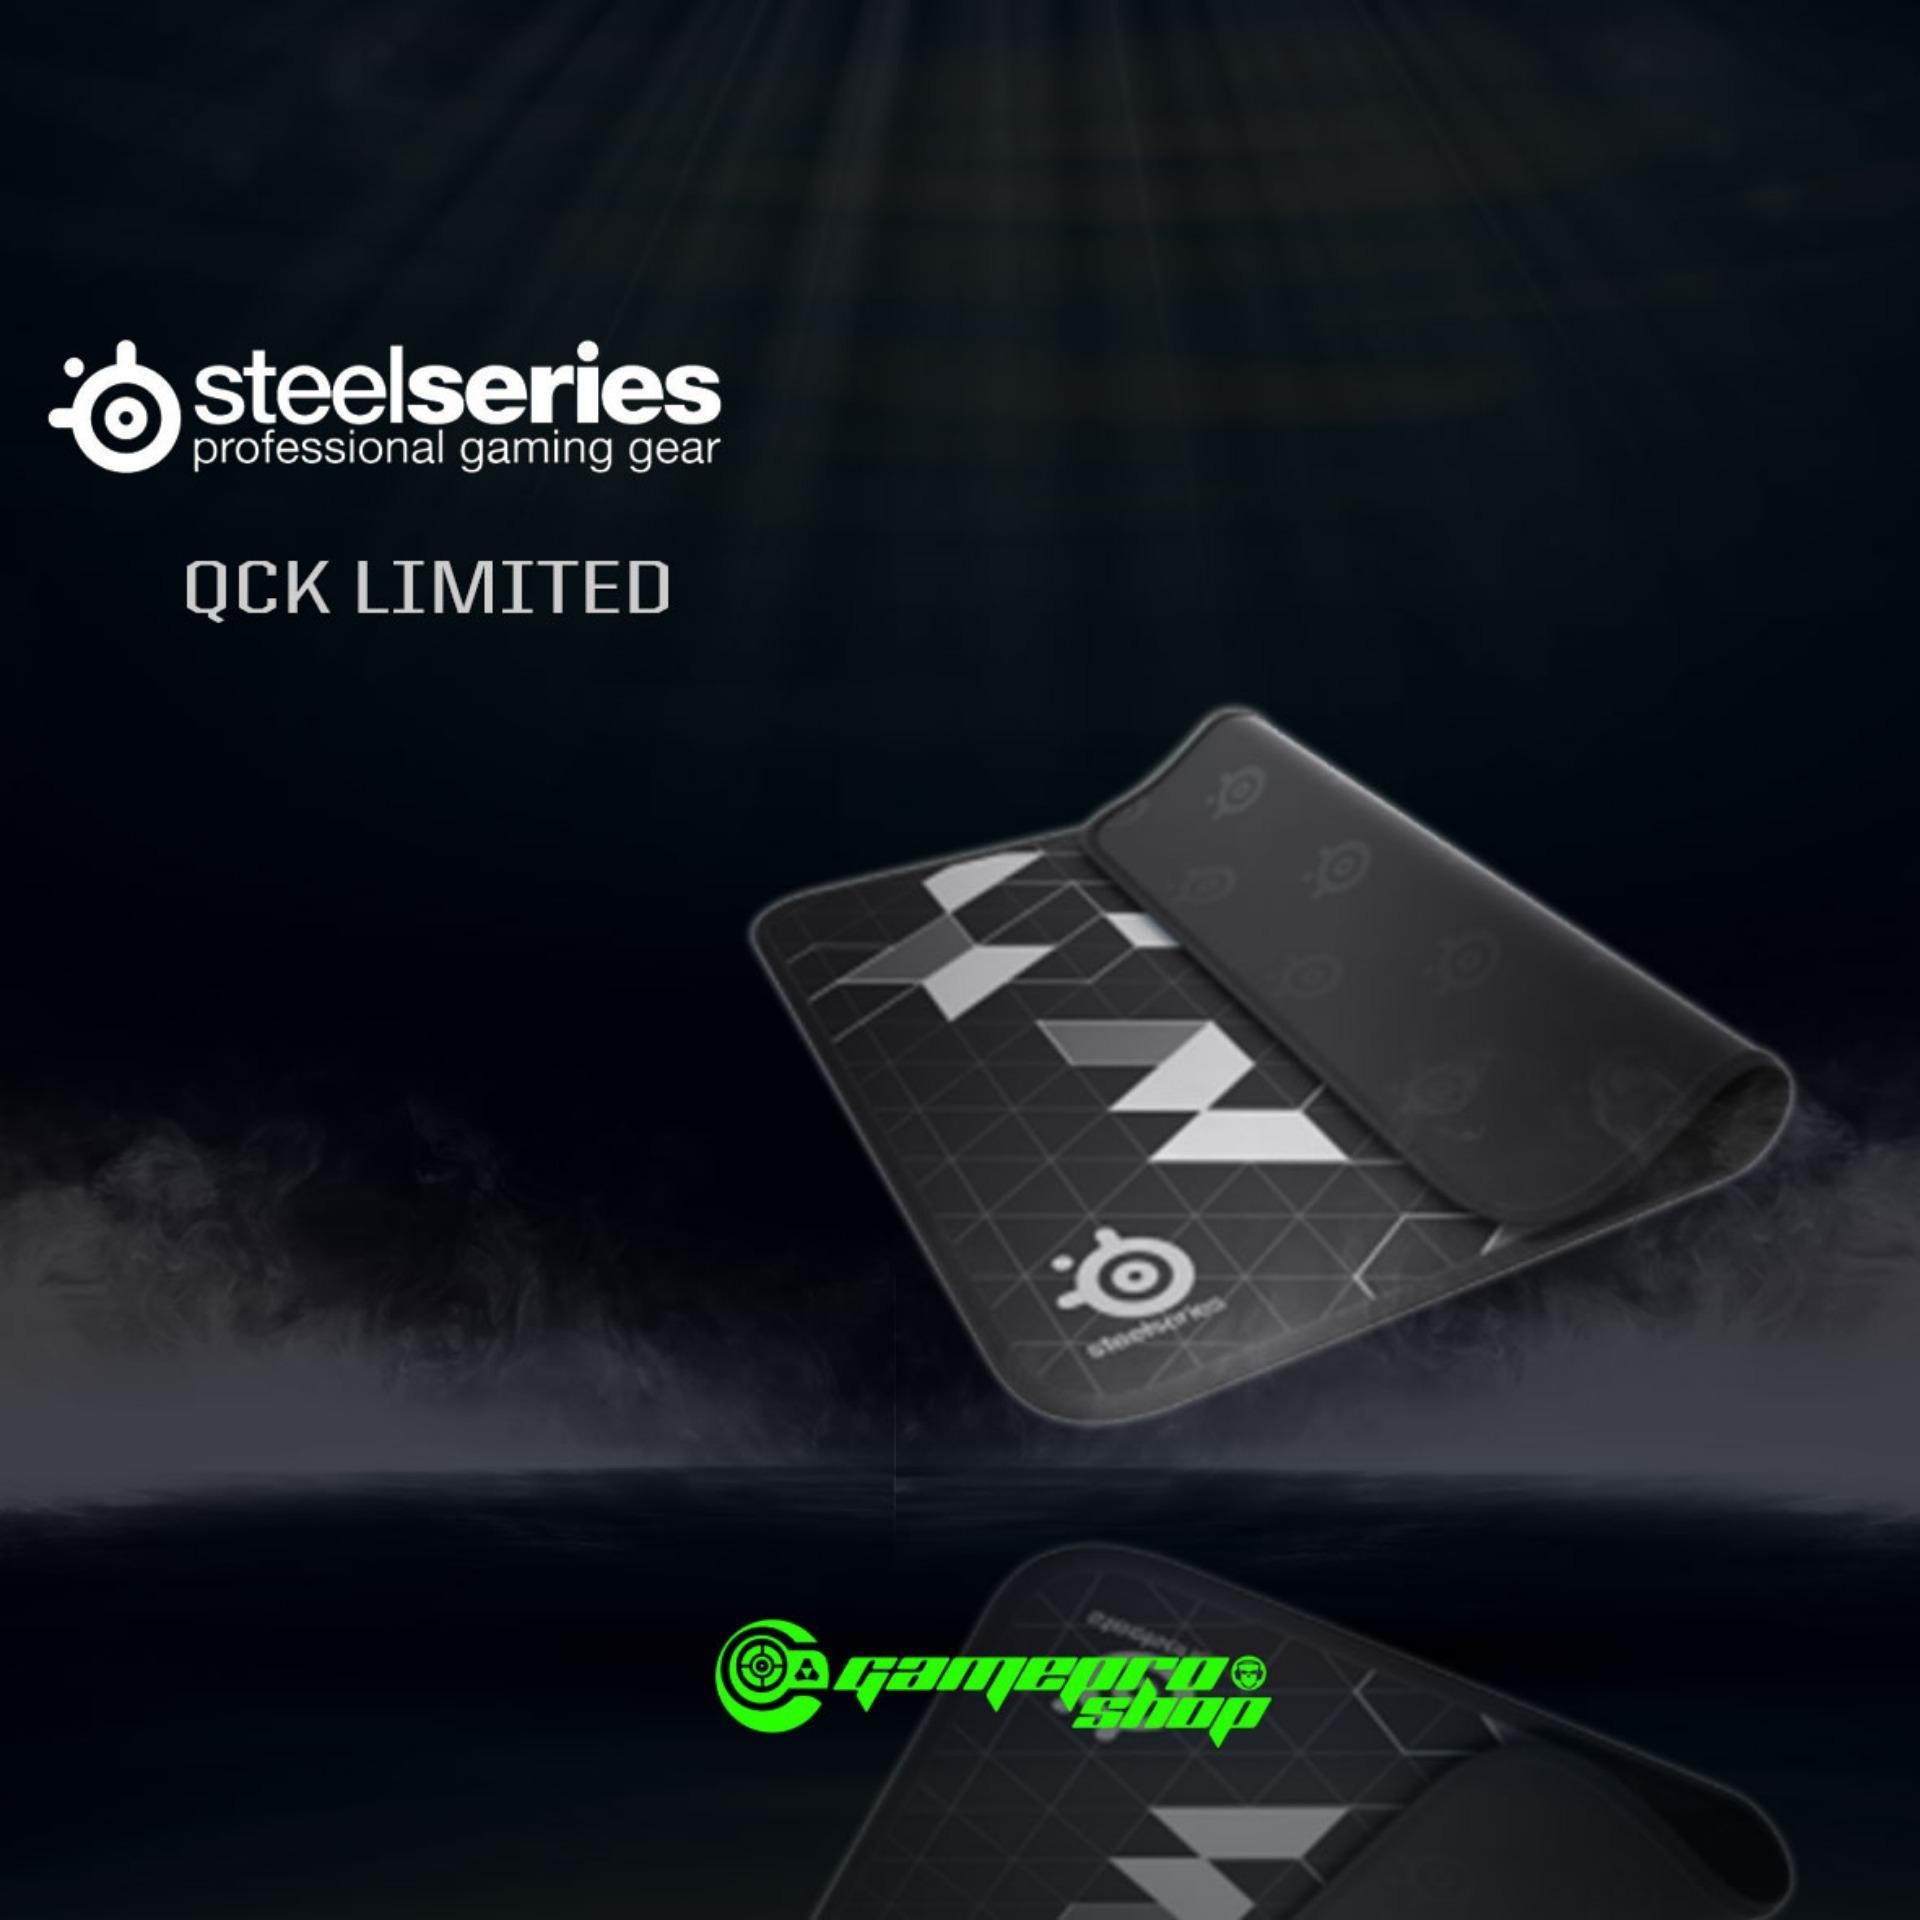 SteelSeries Qck Limited Mousepad *END OF MONTH PROMO*